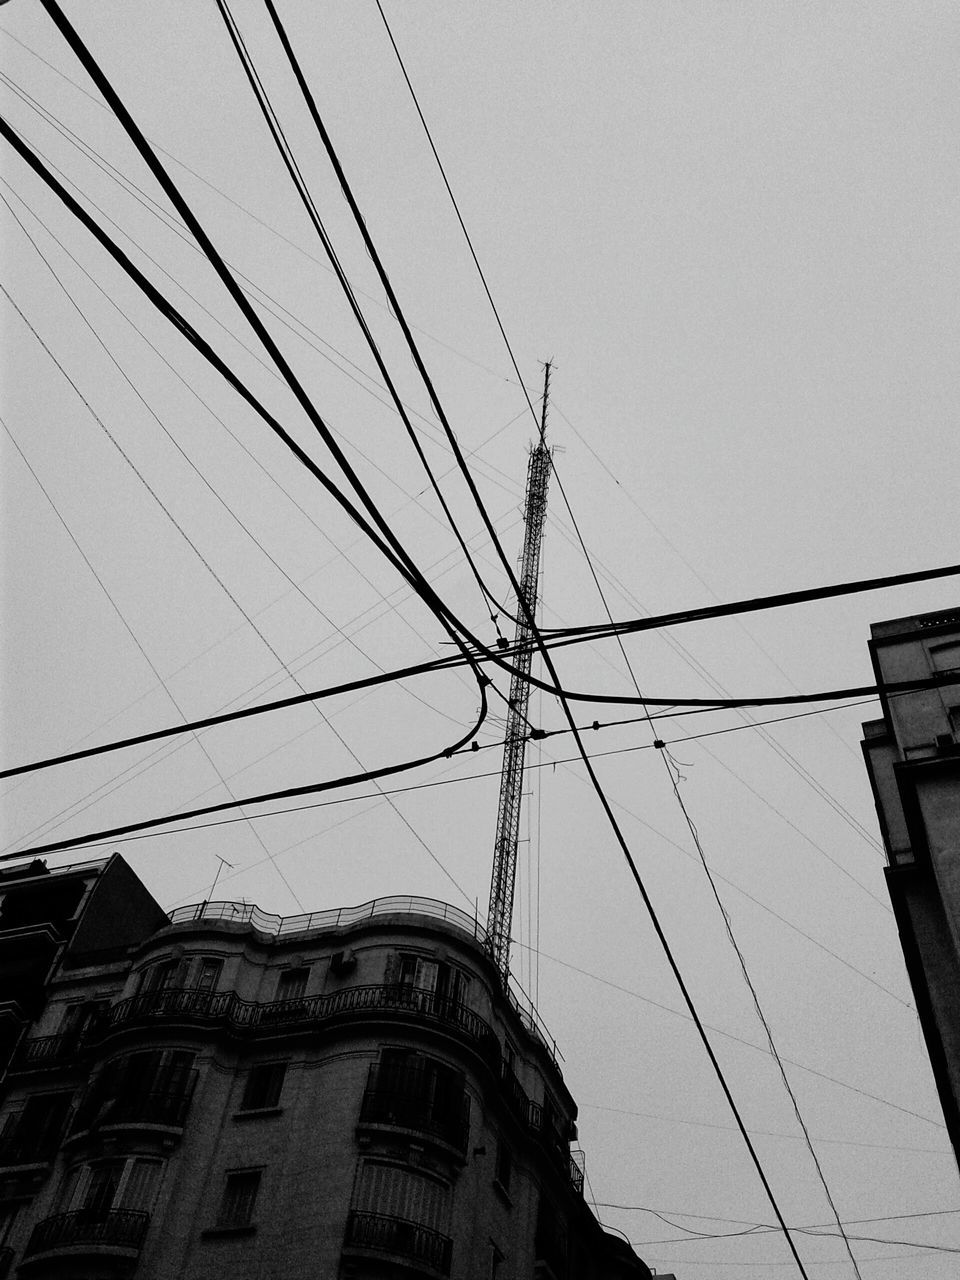 cable, low angle view, building exterior, connection, built structure, architecture, no people, power line, outdoors, day, electricity, clear sky, sky, technology